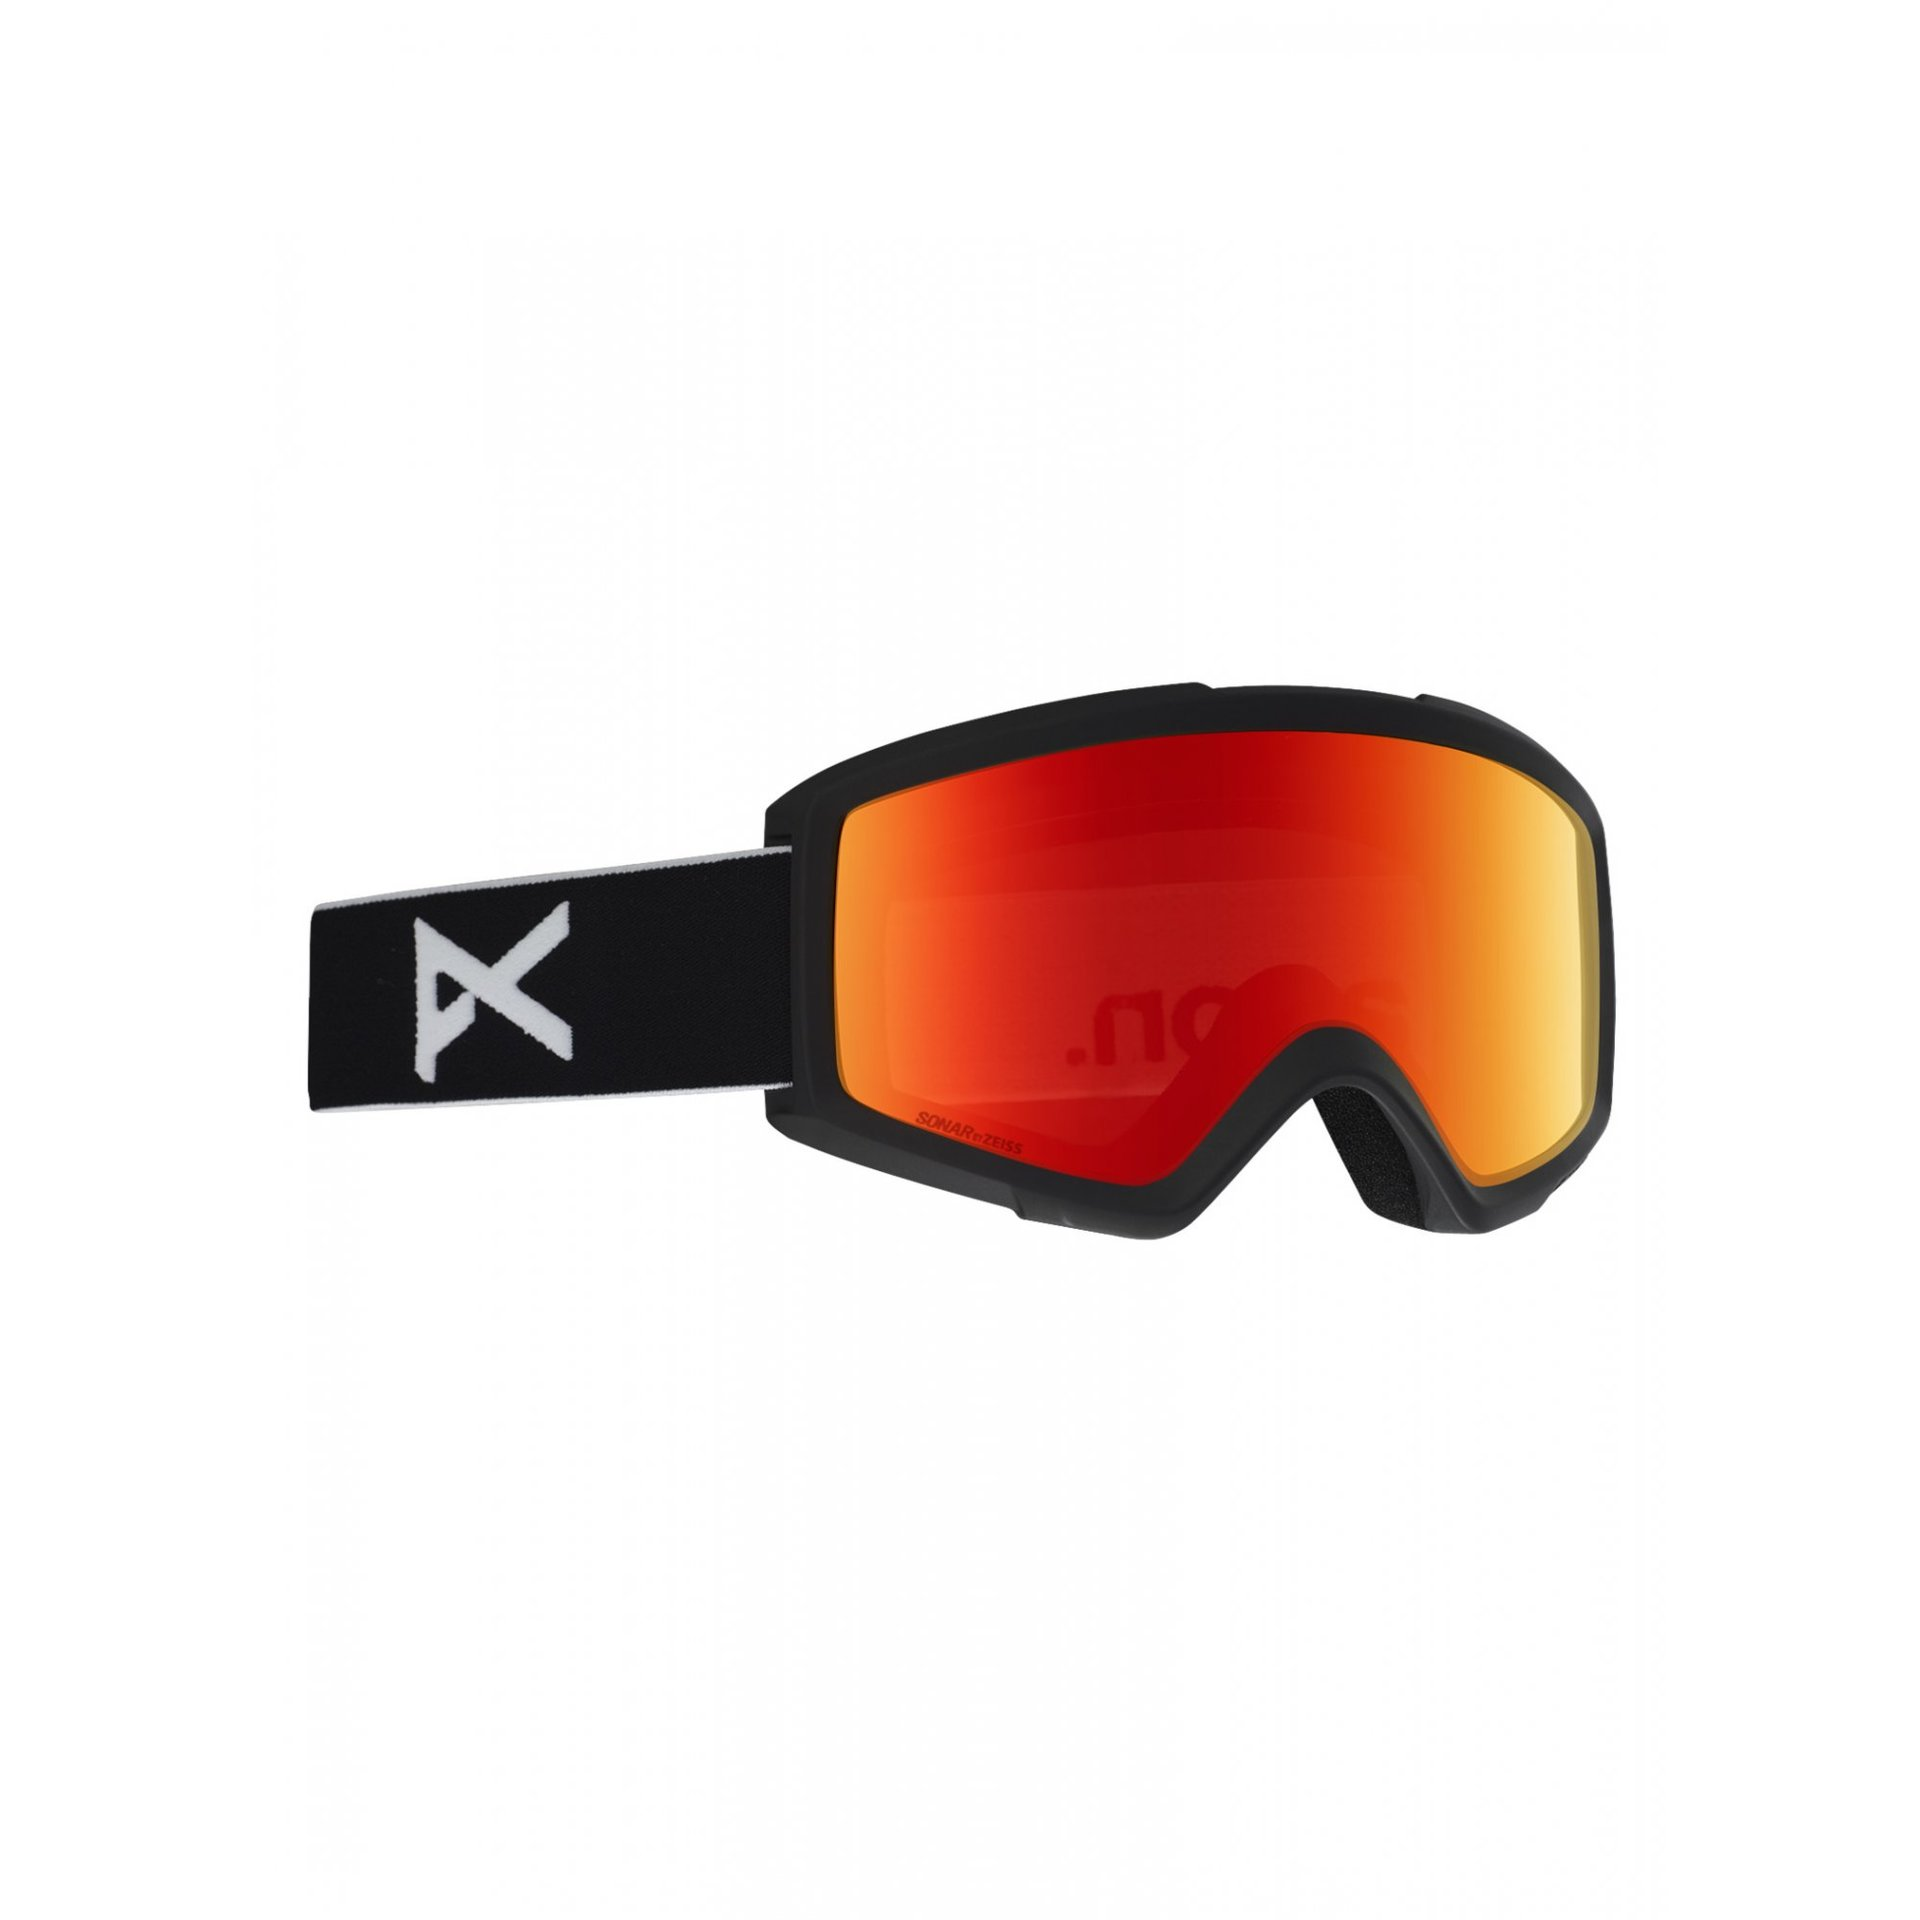 GOGLE ANON HELIX 2.0 BLACK|SONAR RED 1